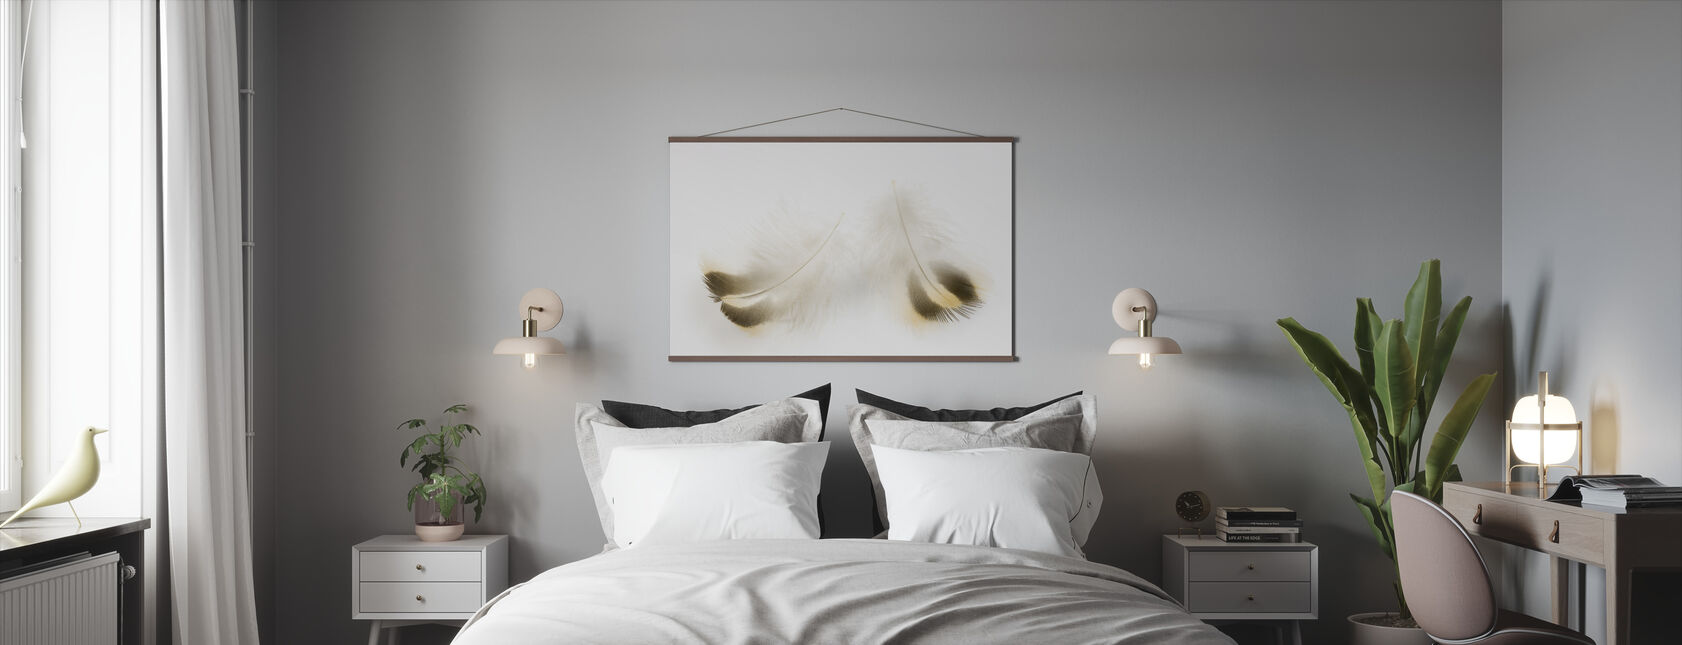 Pair of Feathers - Poster - Bedroom